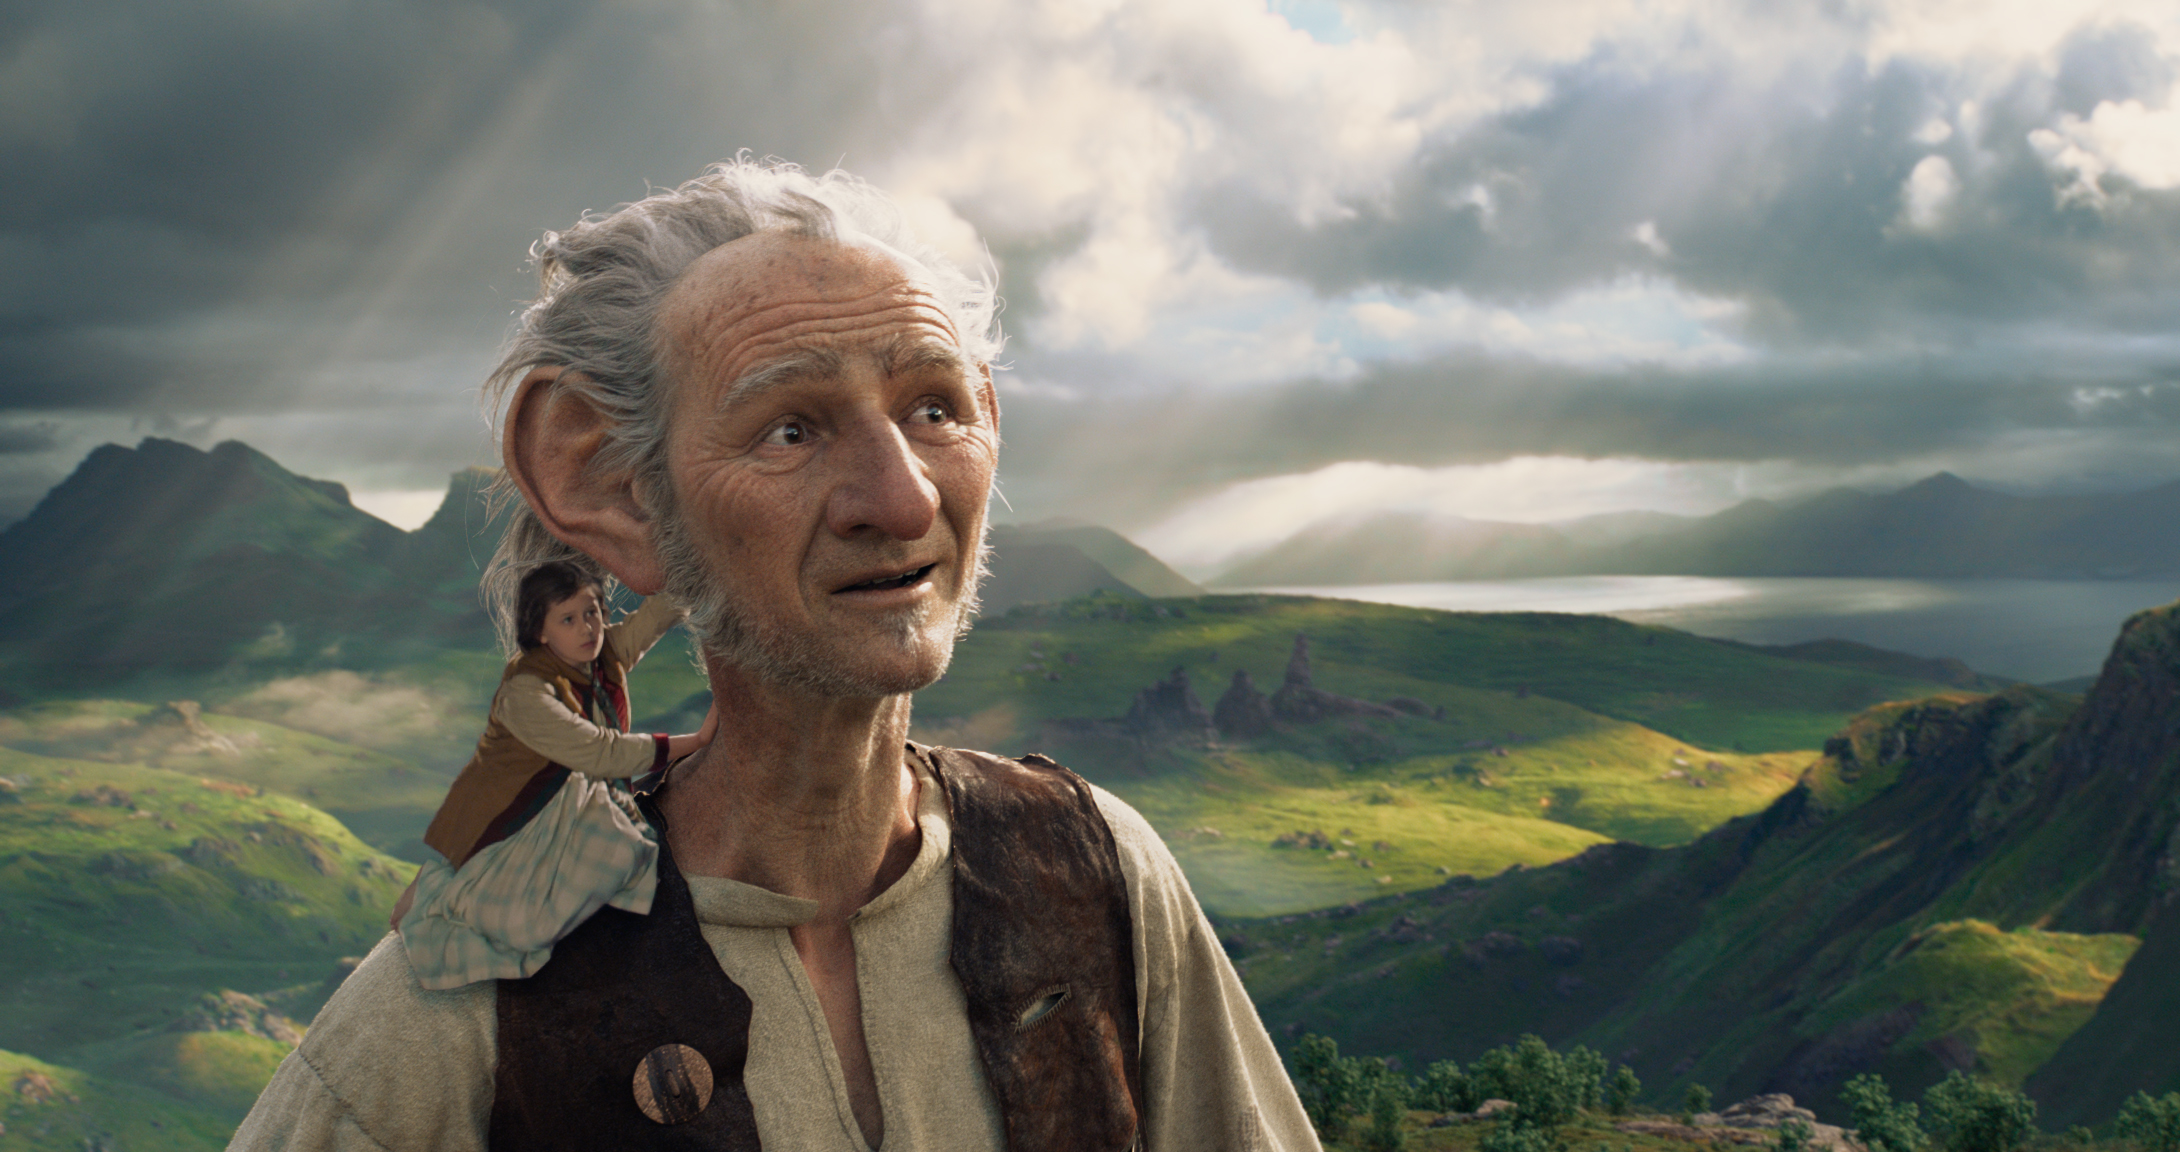 The movie's main characters: BFG (Big Friendly Giant) and Sophie.